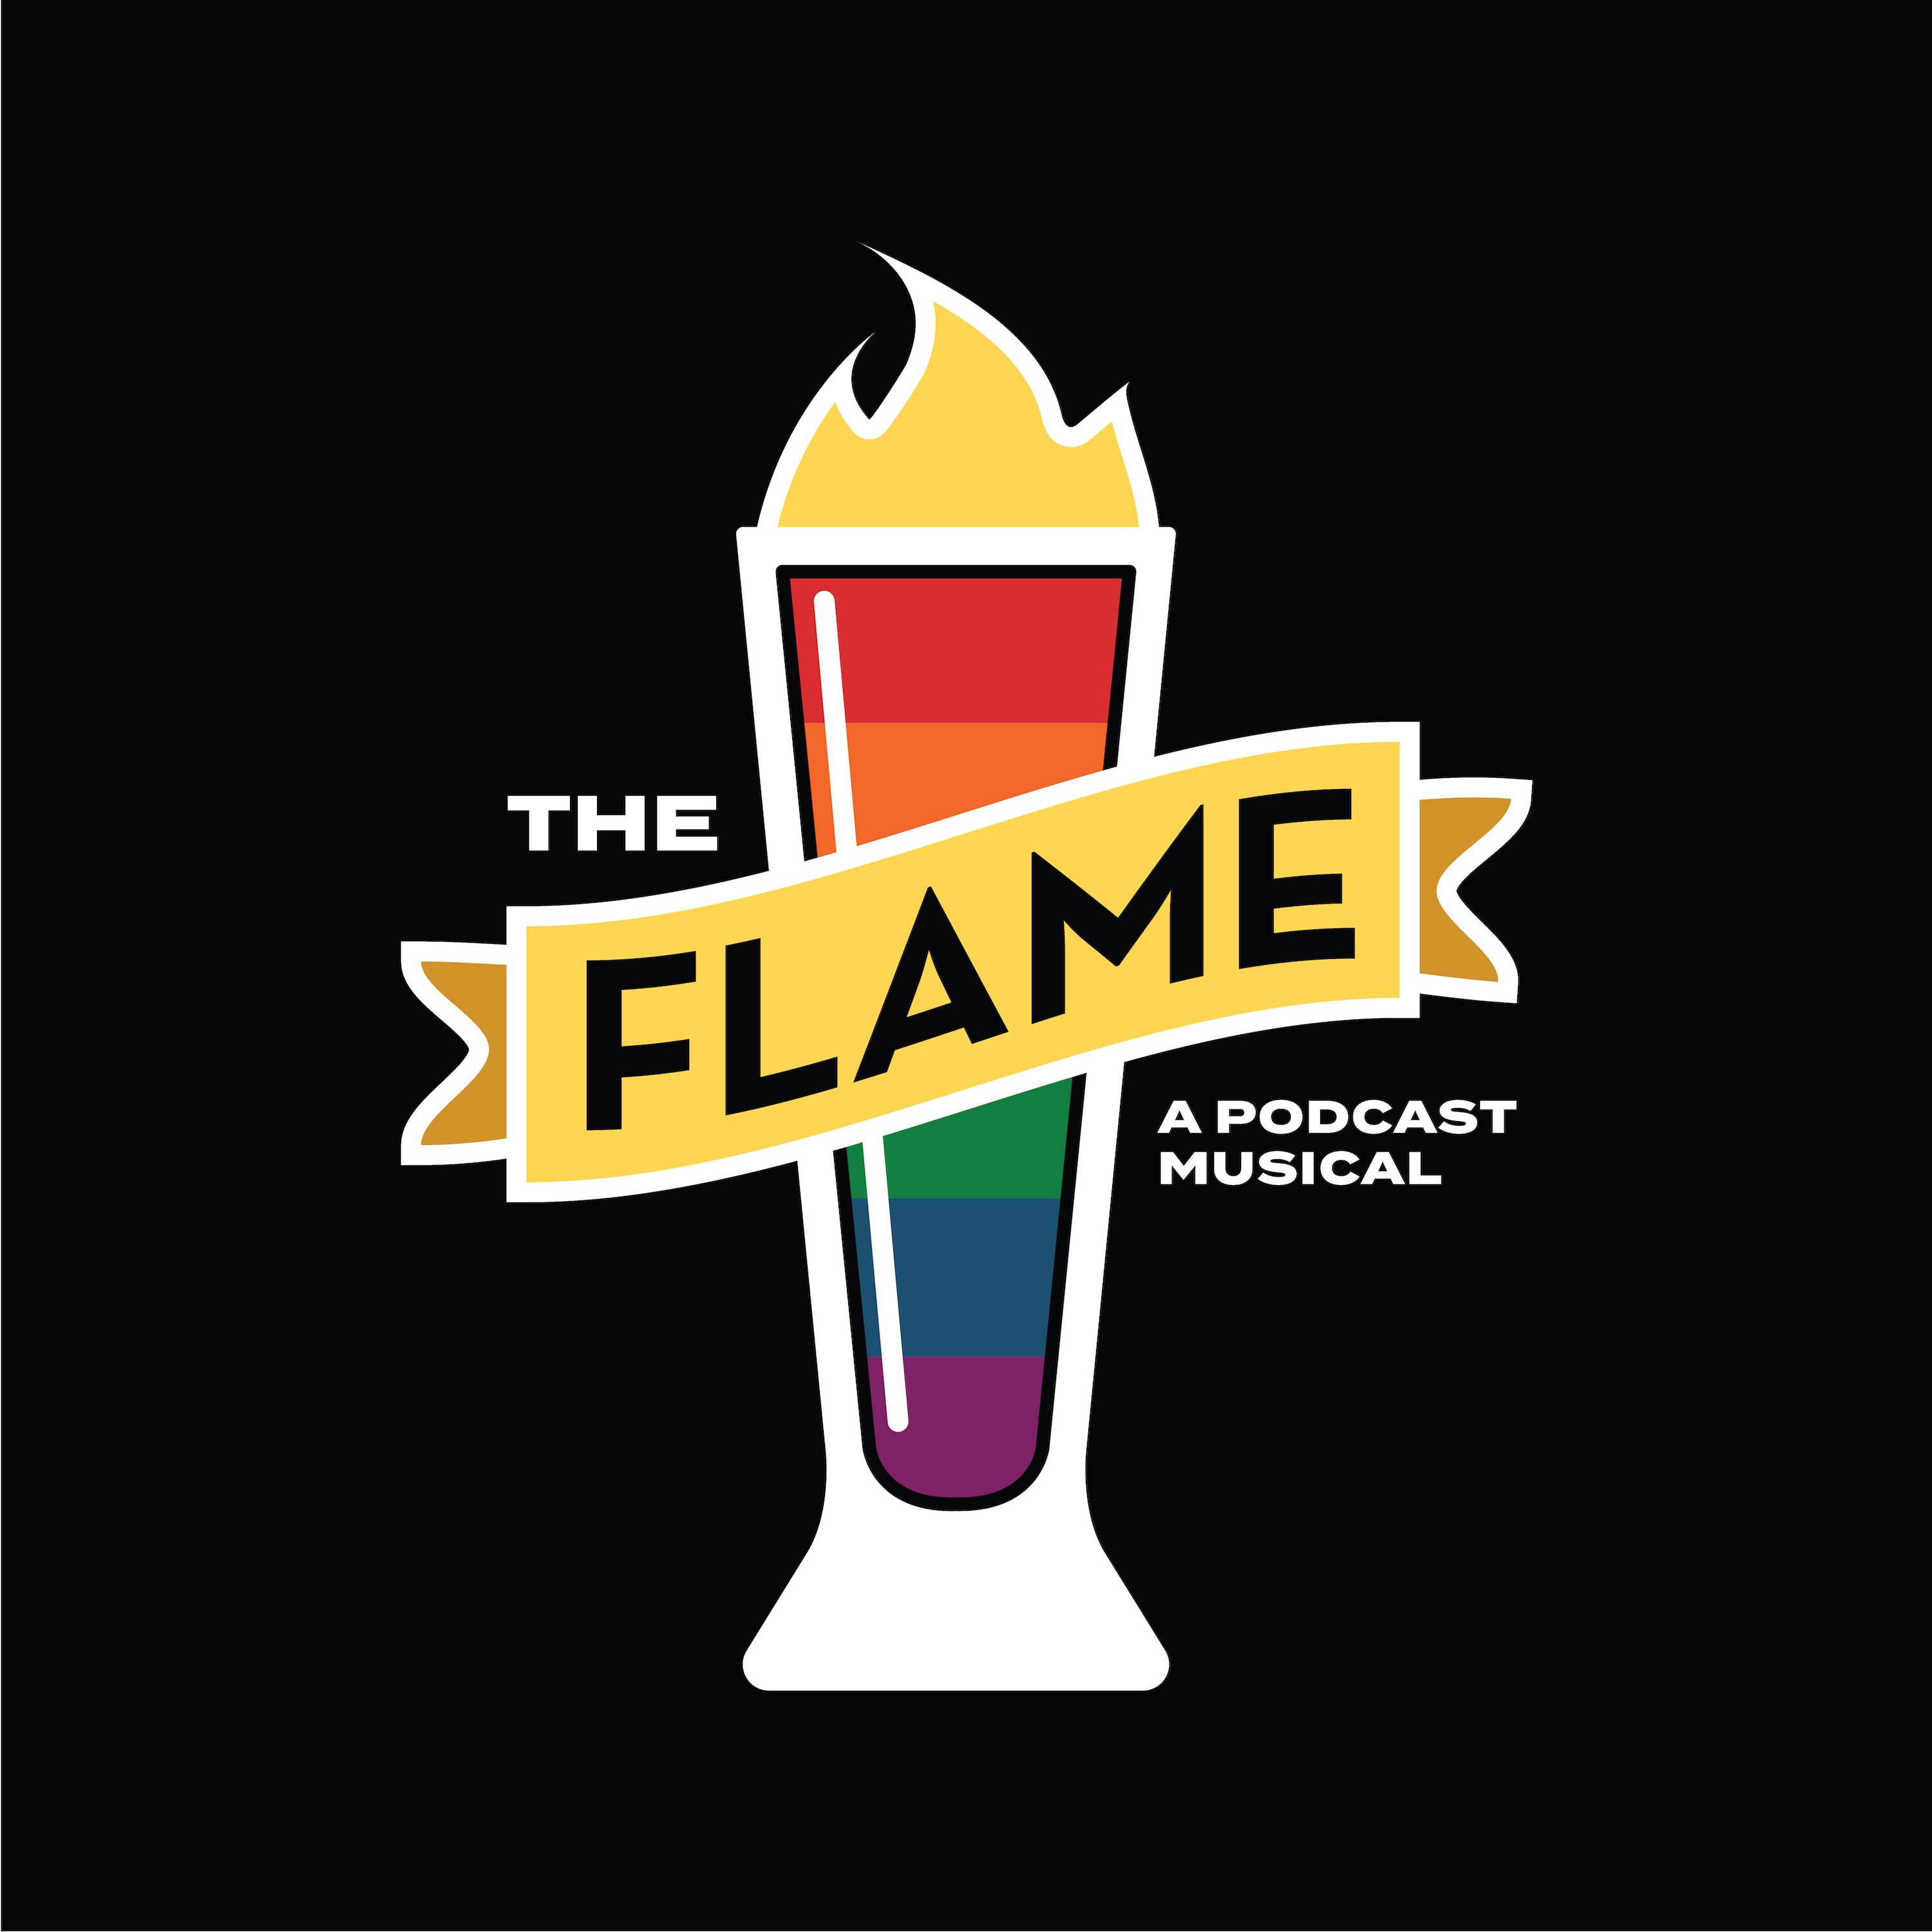 Lez Hang Out | A Lesbian Podcast - The Flame Episode 1 - Welcome to The Flame